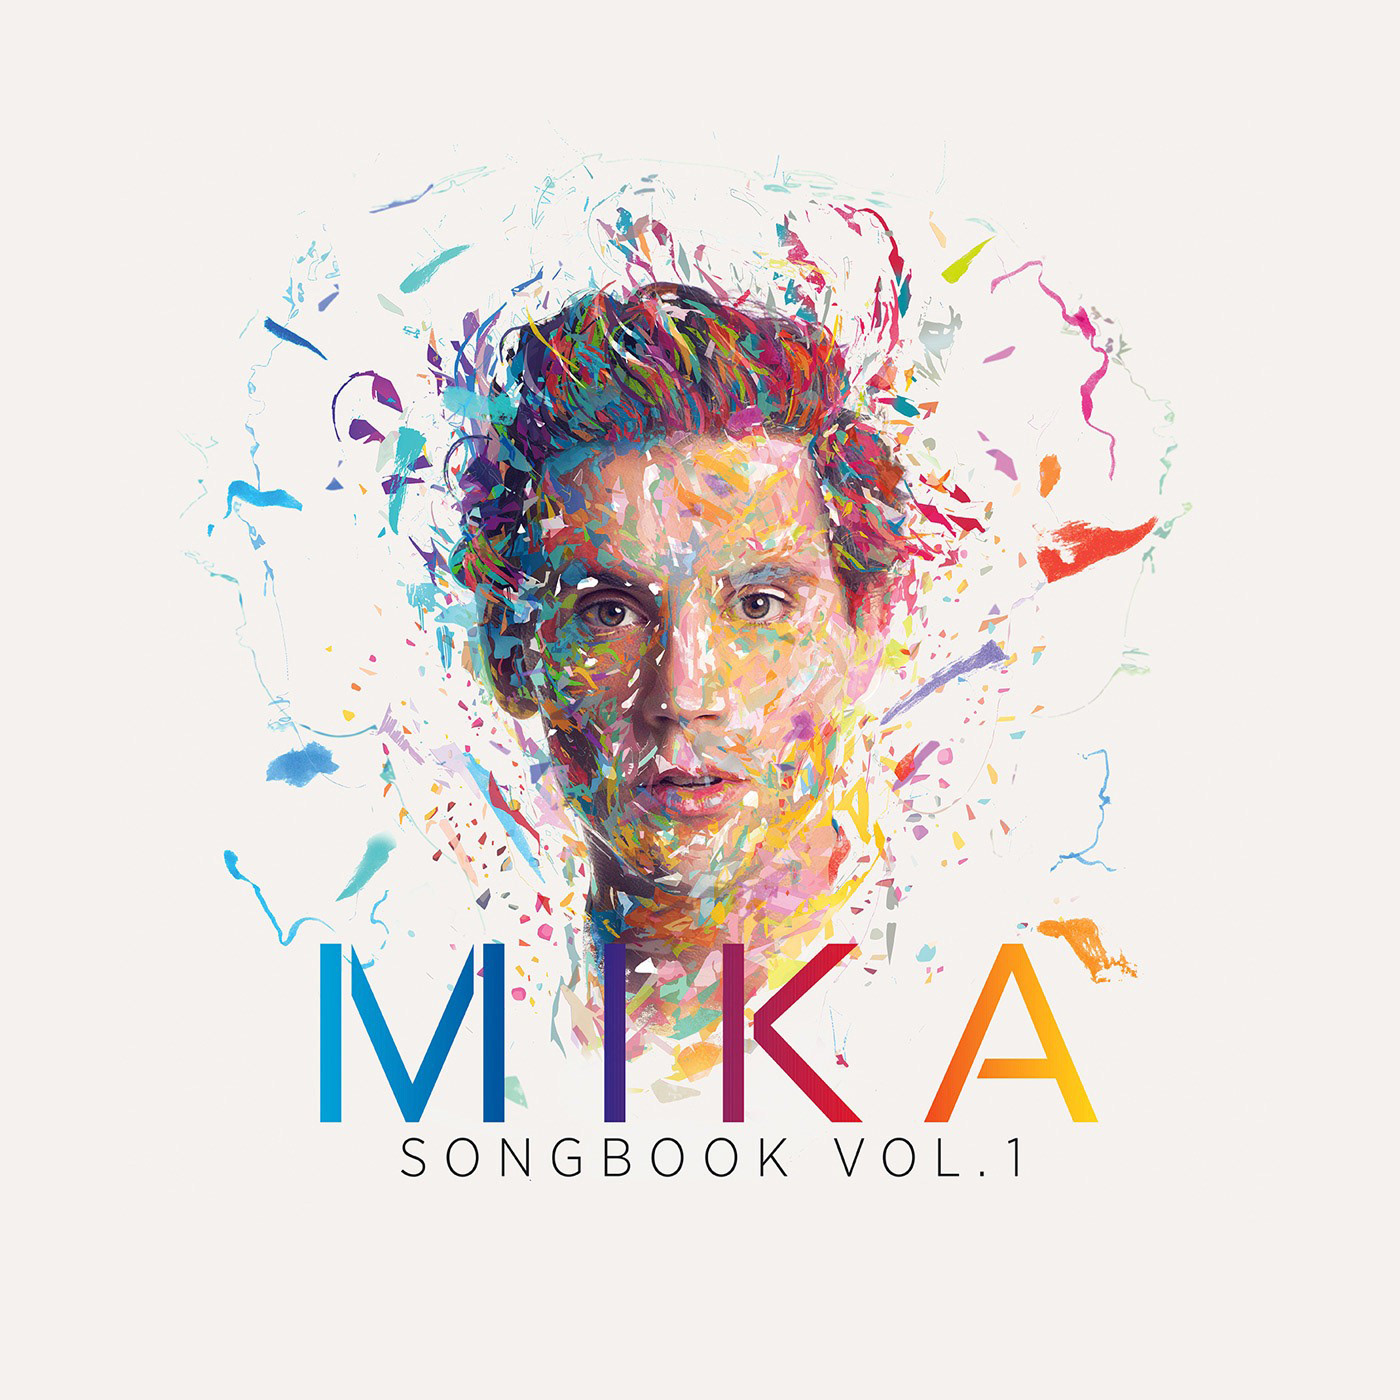 Mika - Songbook Vol. 1 - CD